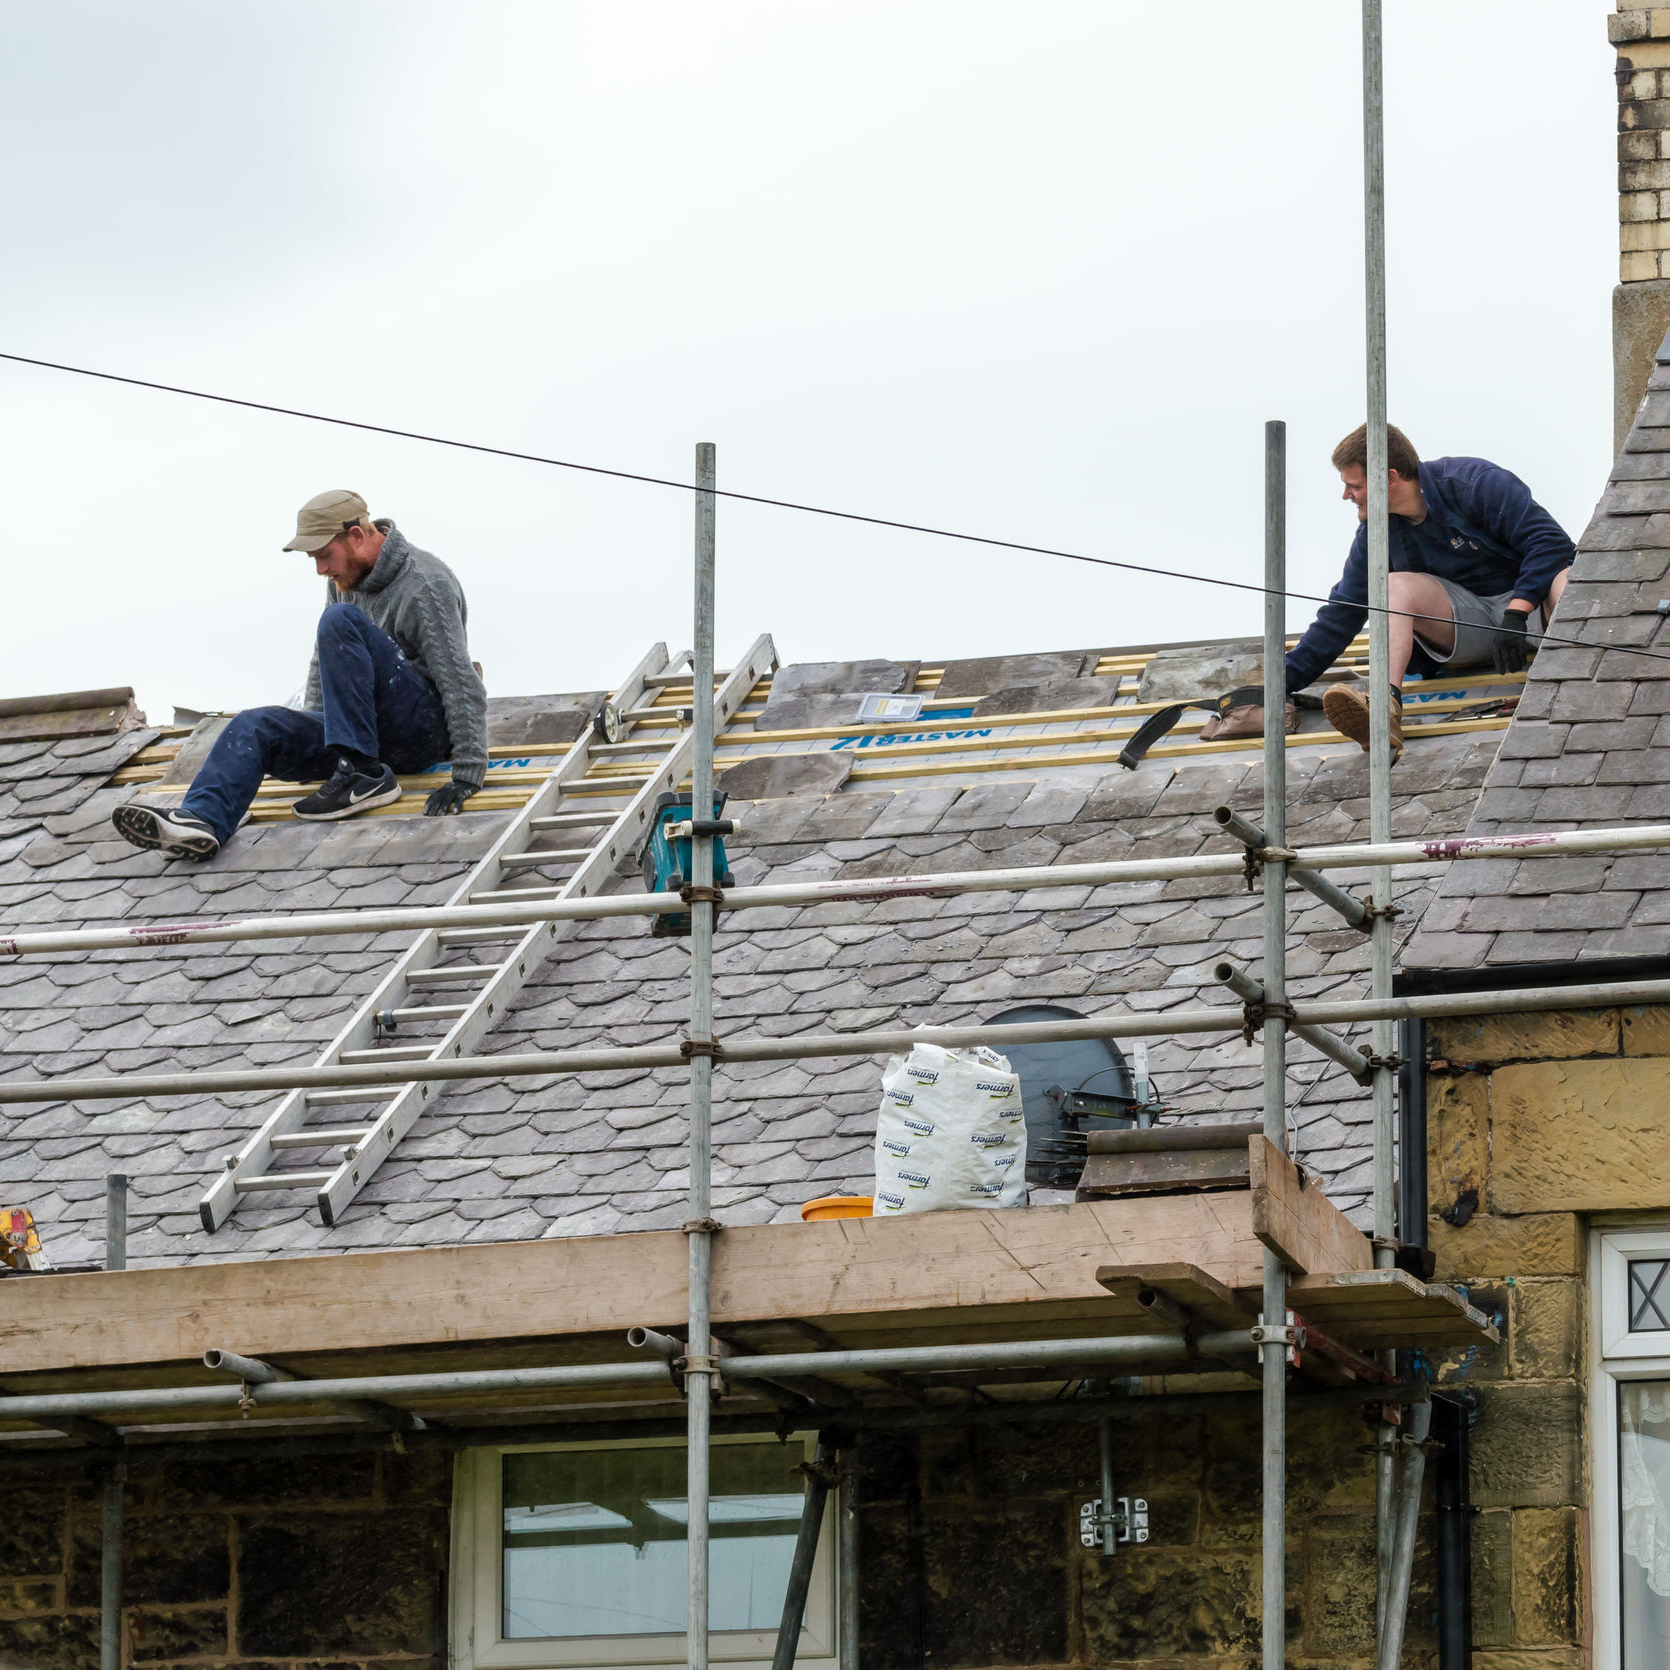 Roofer in the process of restoring a roof